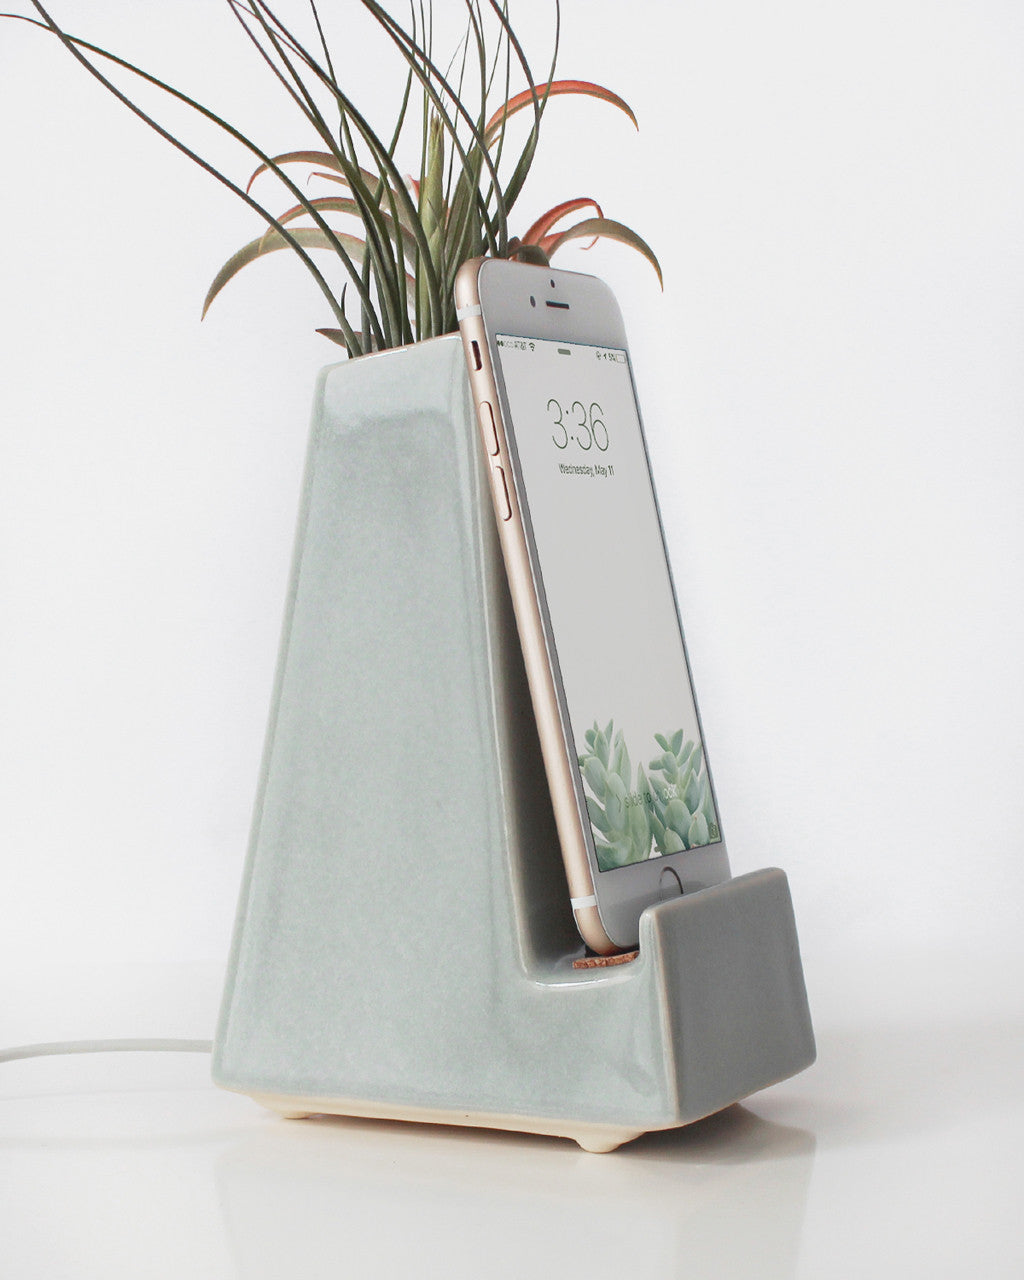 Gray Vase Phone Dock | Stak Ceramics